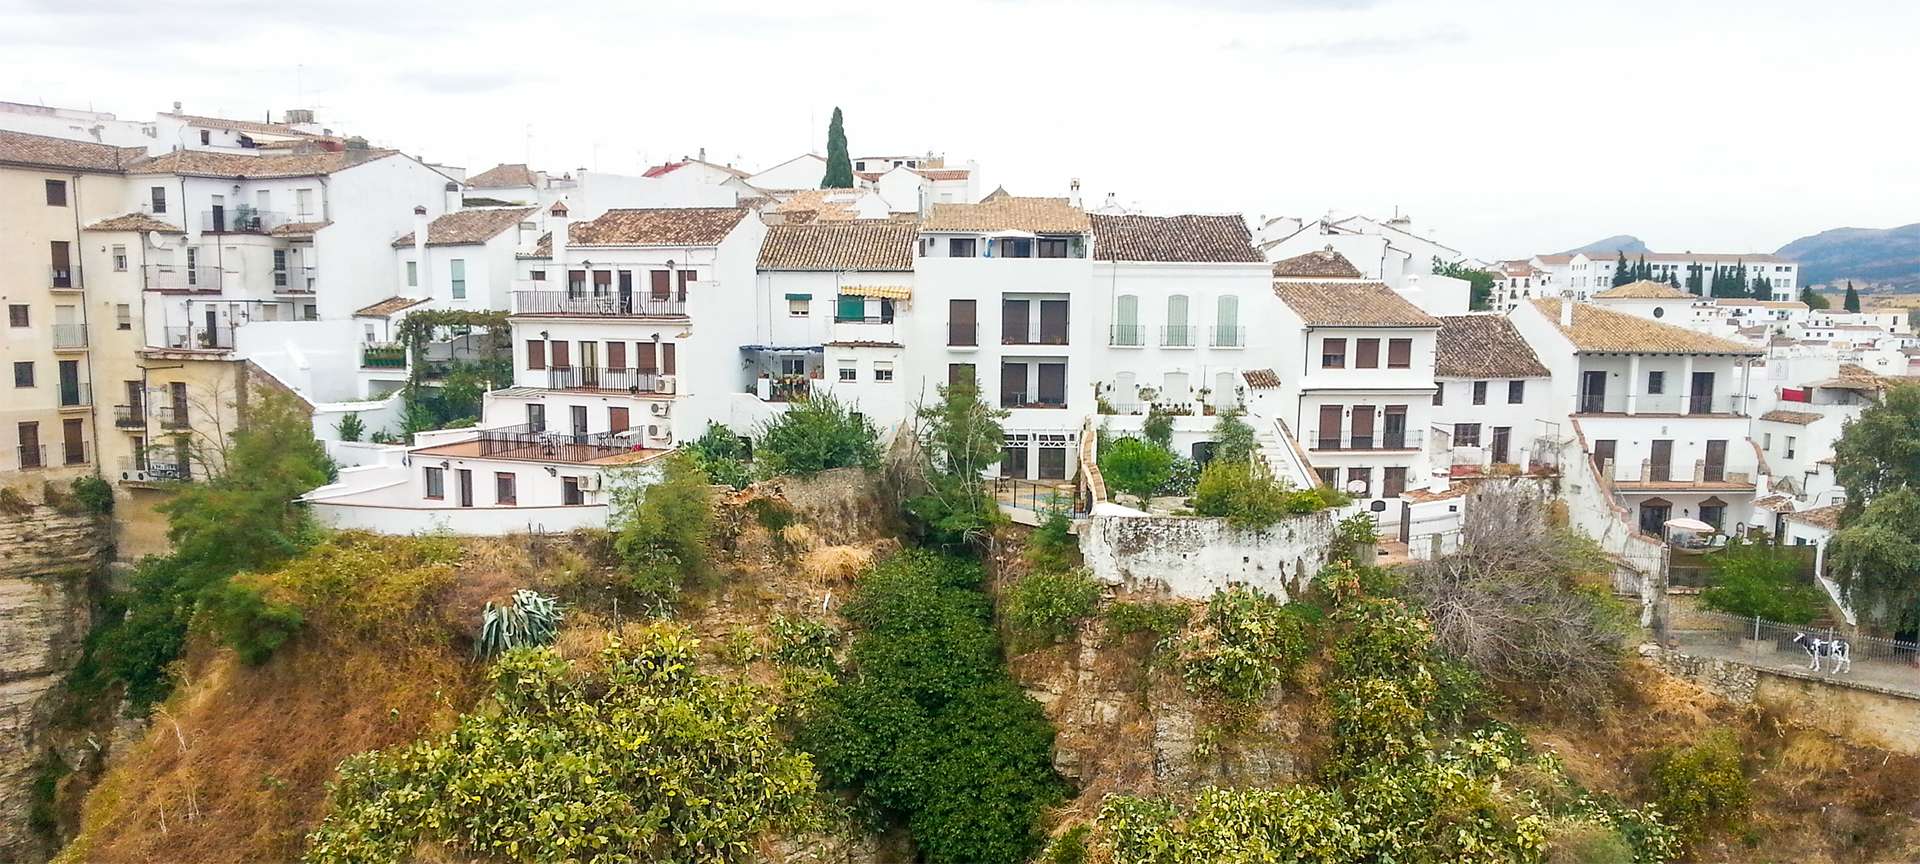 Enchanting white-washed villages of Andalucía - they're all characterised by white walls and red or brown roofs, narrow cobbled streets and alleys adorned with colourful flowerpots, local craft shops, at least one big notable church, and sometimes even the remains of an old castle or fortress.